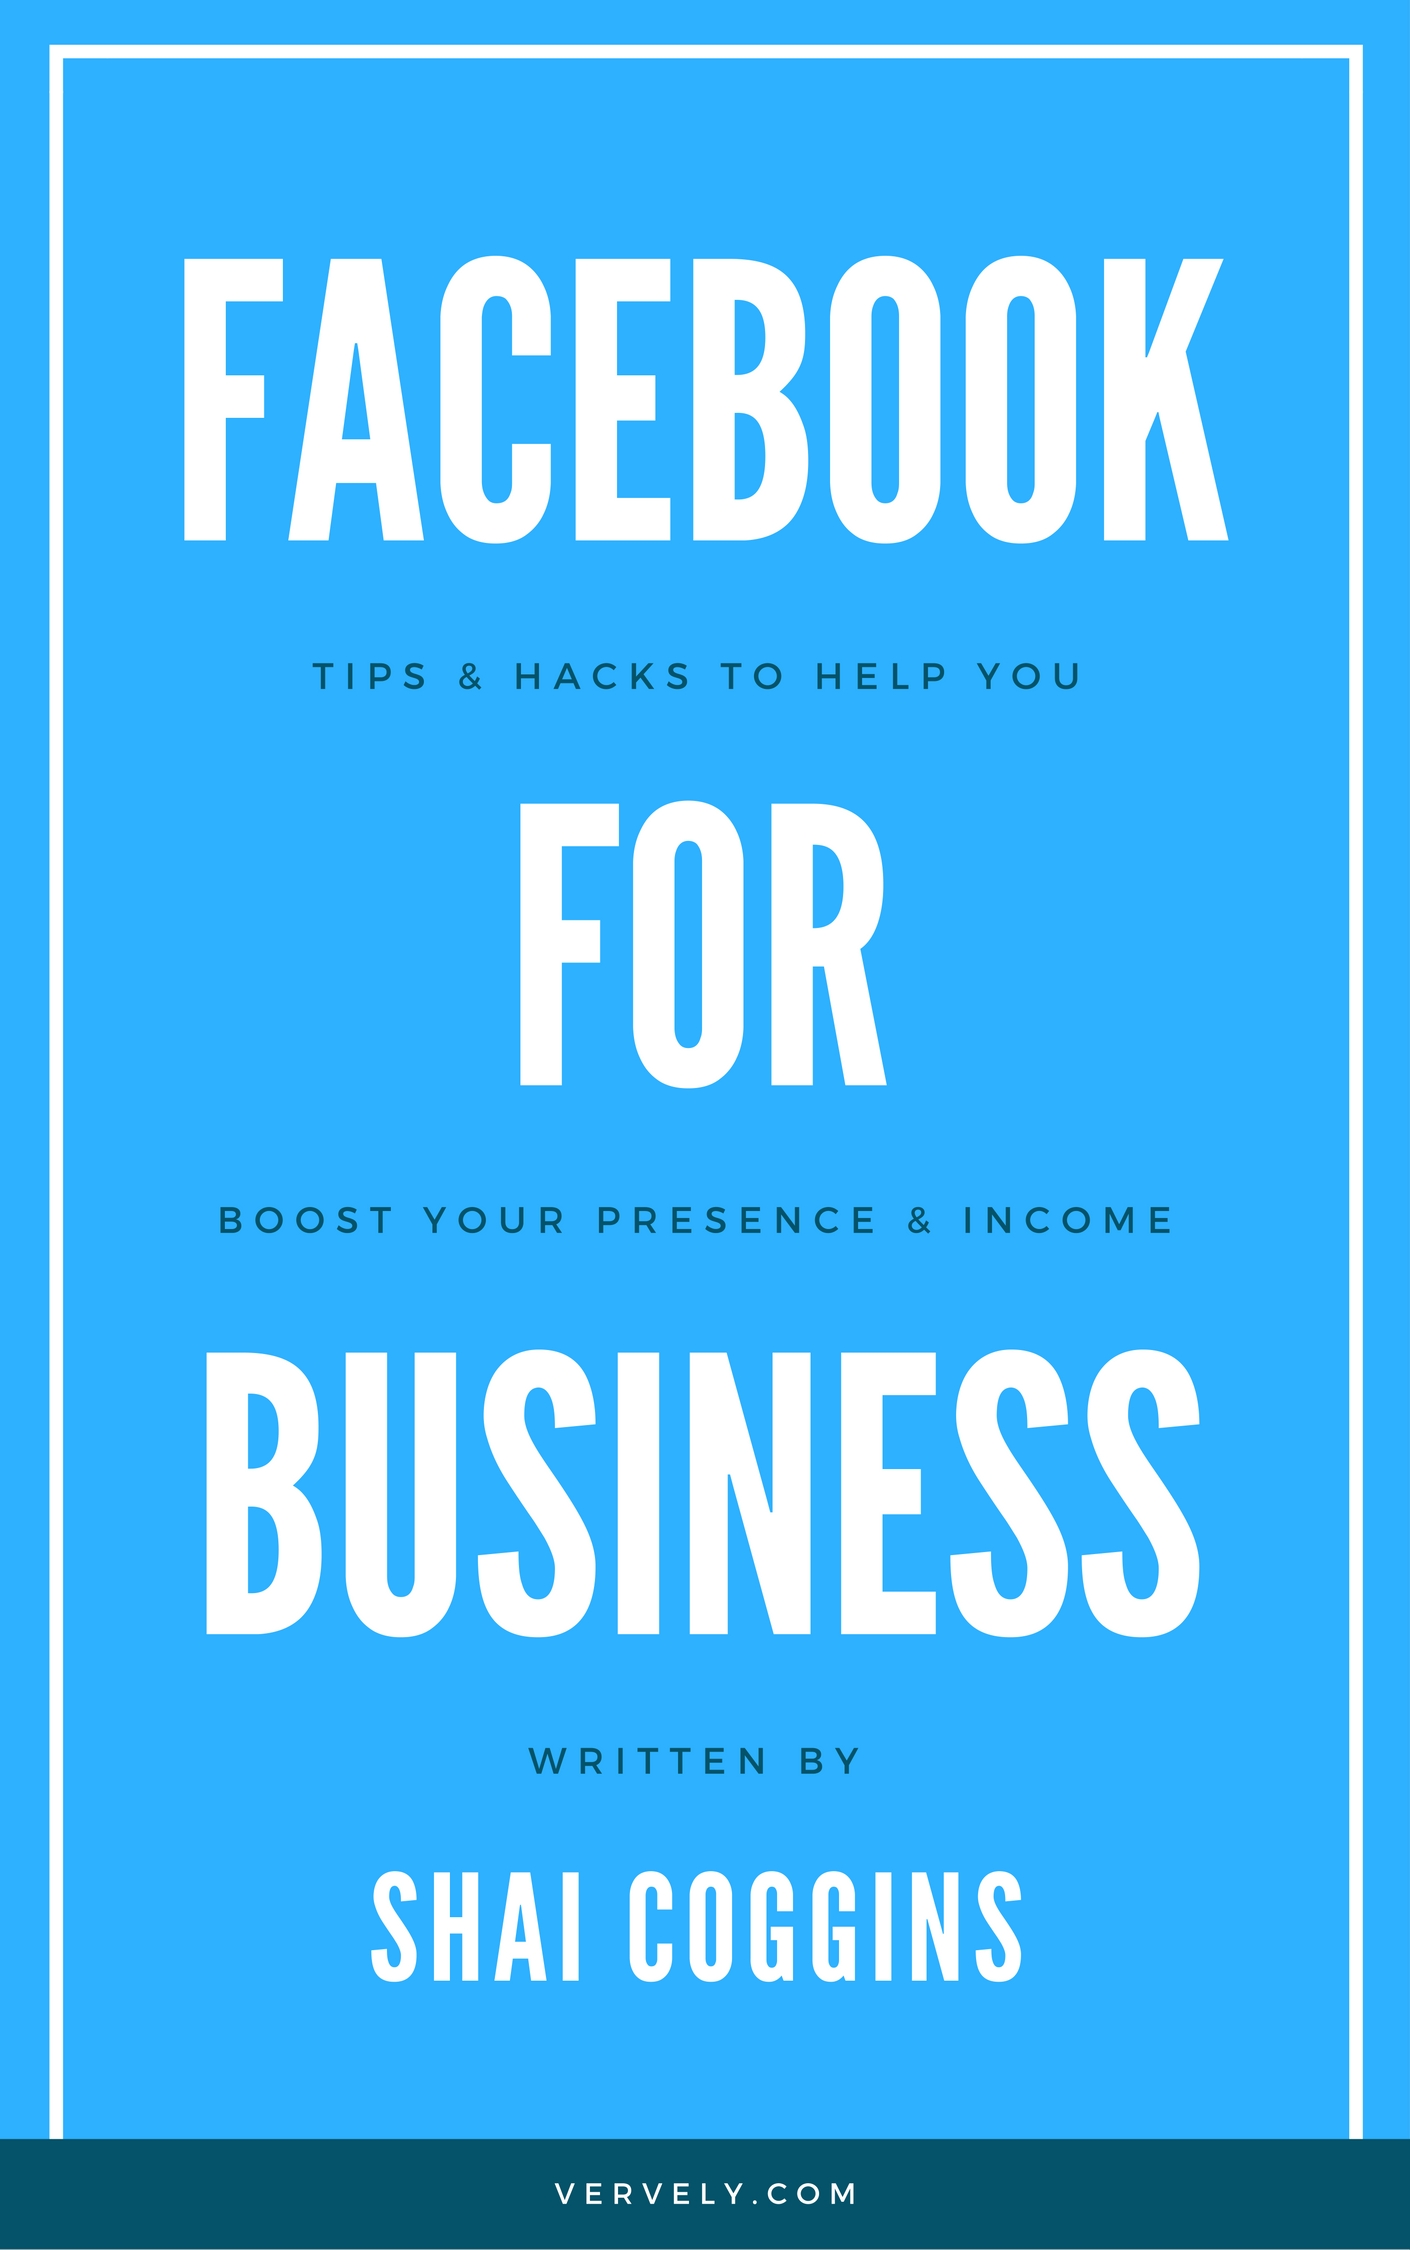 Facebook For Business - Tips and Hacks To Help You Boost Your Presence and Income